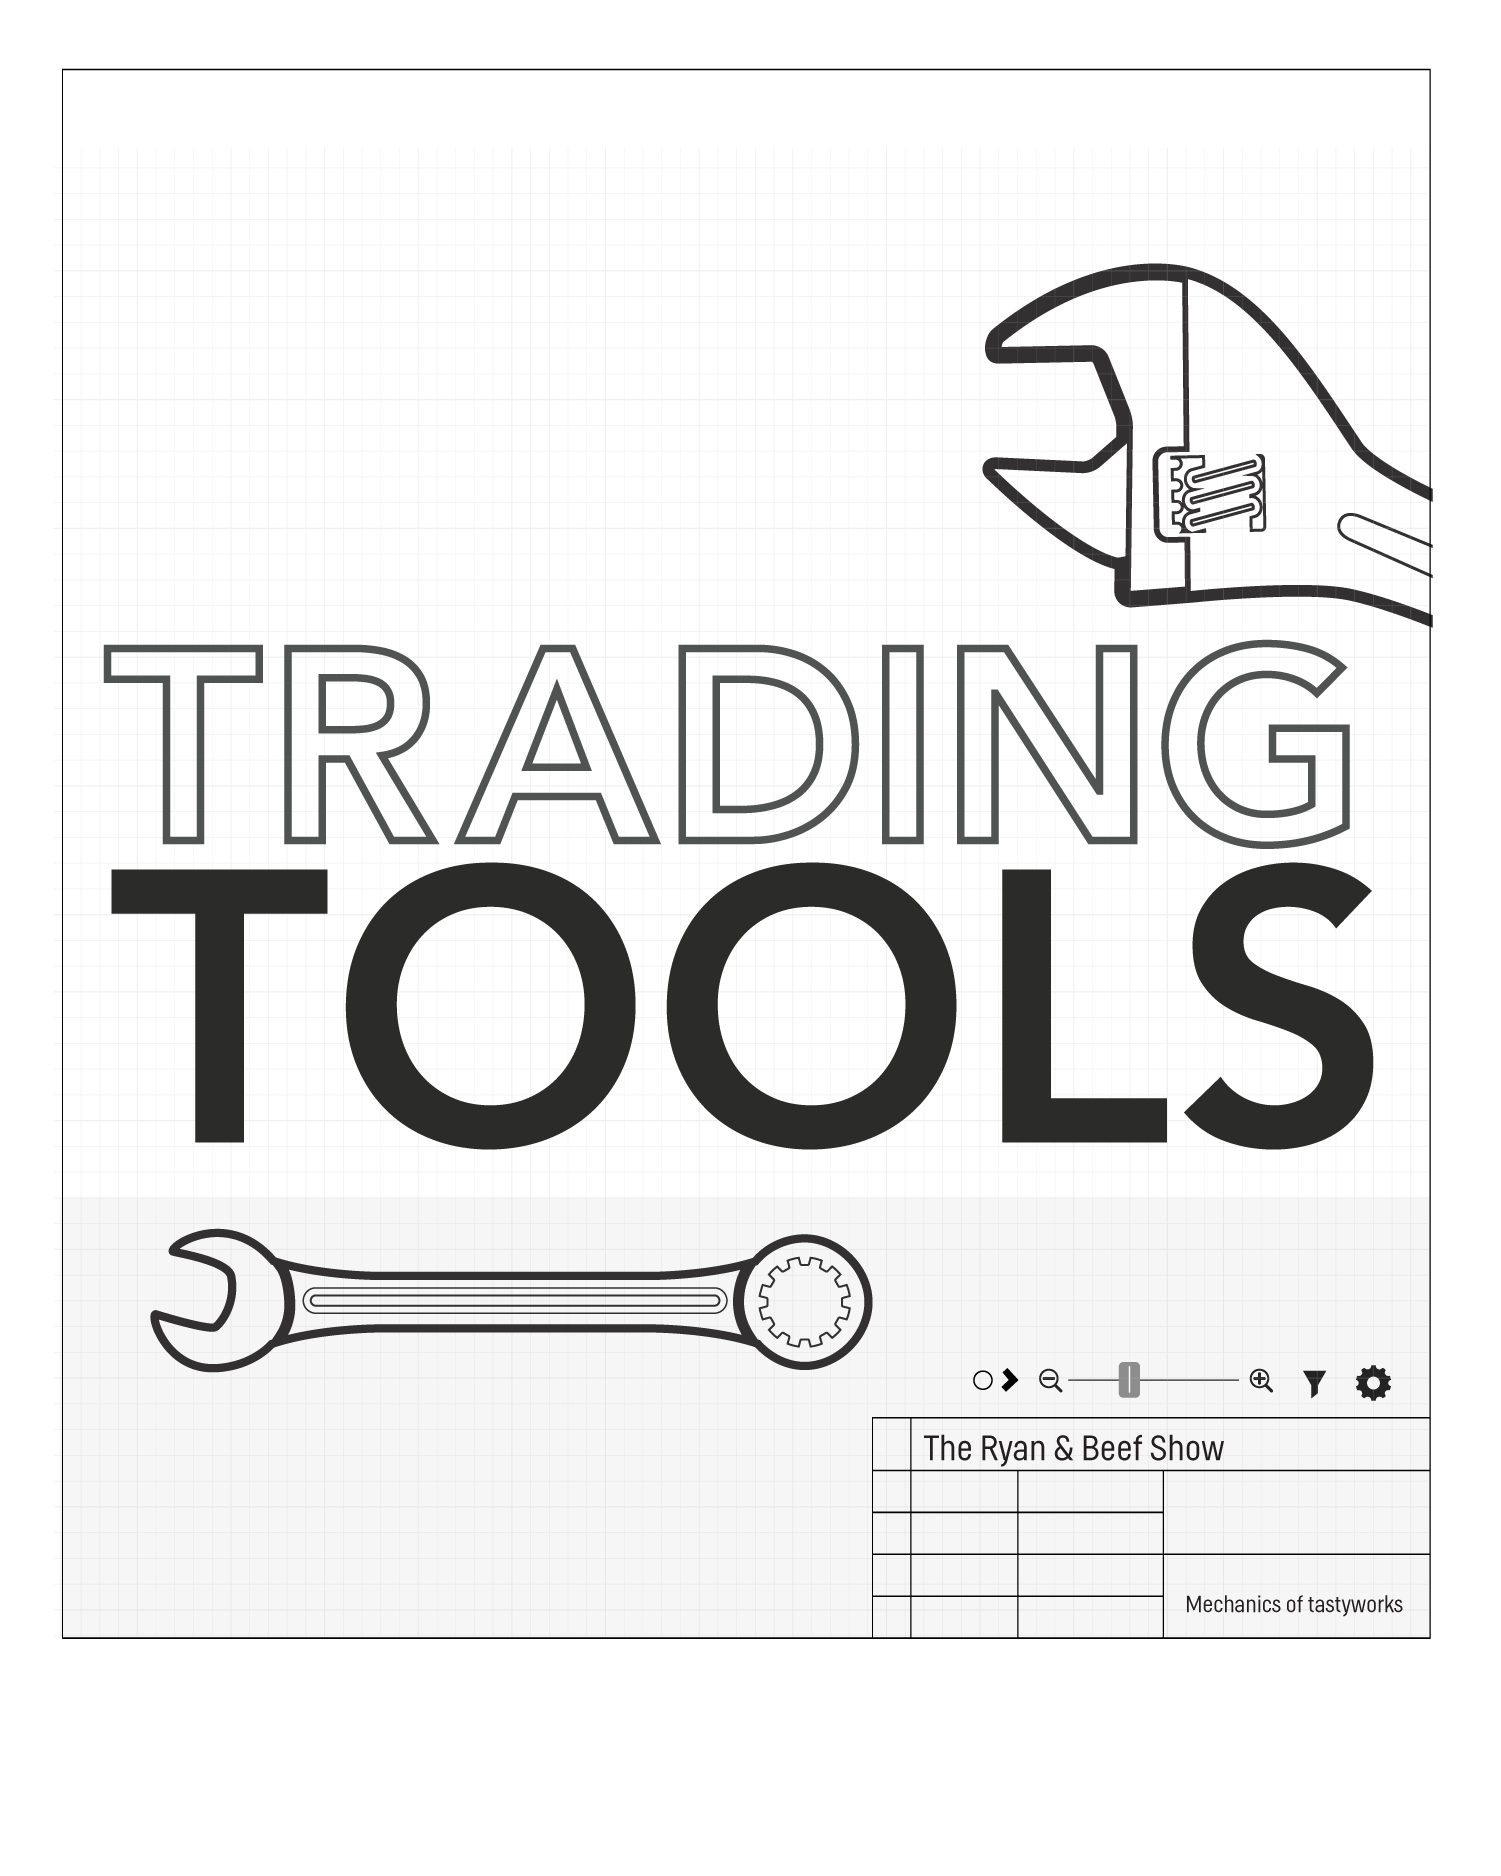 The Ryan & Beef Show - Trading Tools